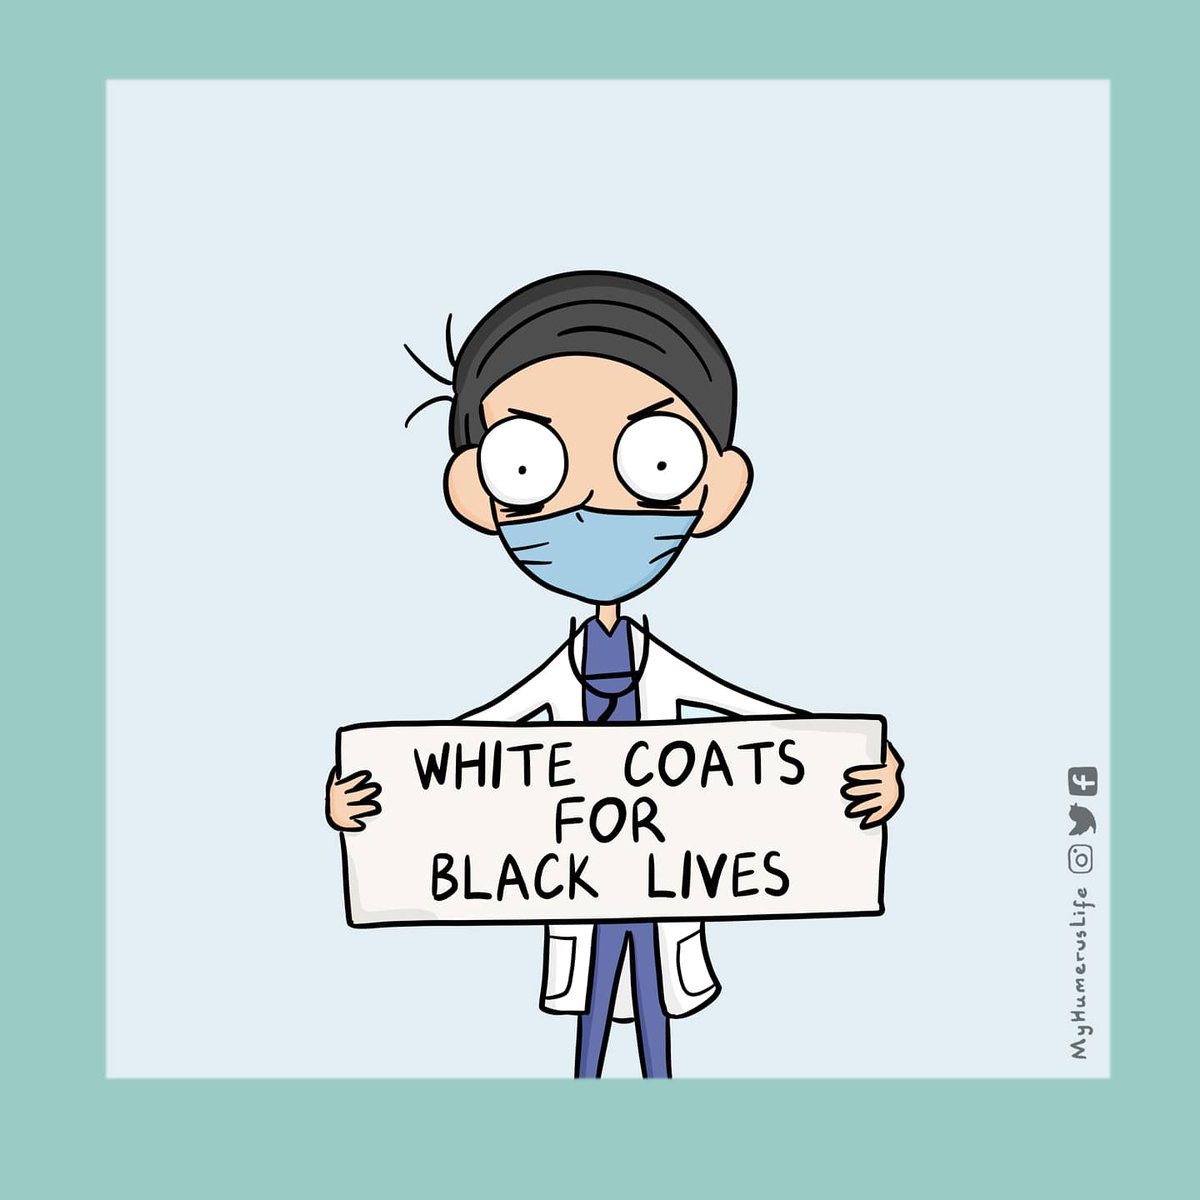 #Racism. It's not just a political issue.  It's a structural issue. It is a #health issue. It is an identity issue. As a generation who is aware of this, it is our responsibility to actively seek solutions instead of standing idly by. #BlackLivesMatter #whitecoatsforblacklivespic.twitter.com/lBvmWkoxcV